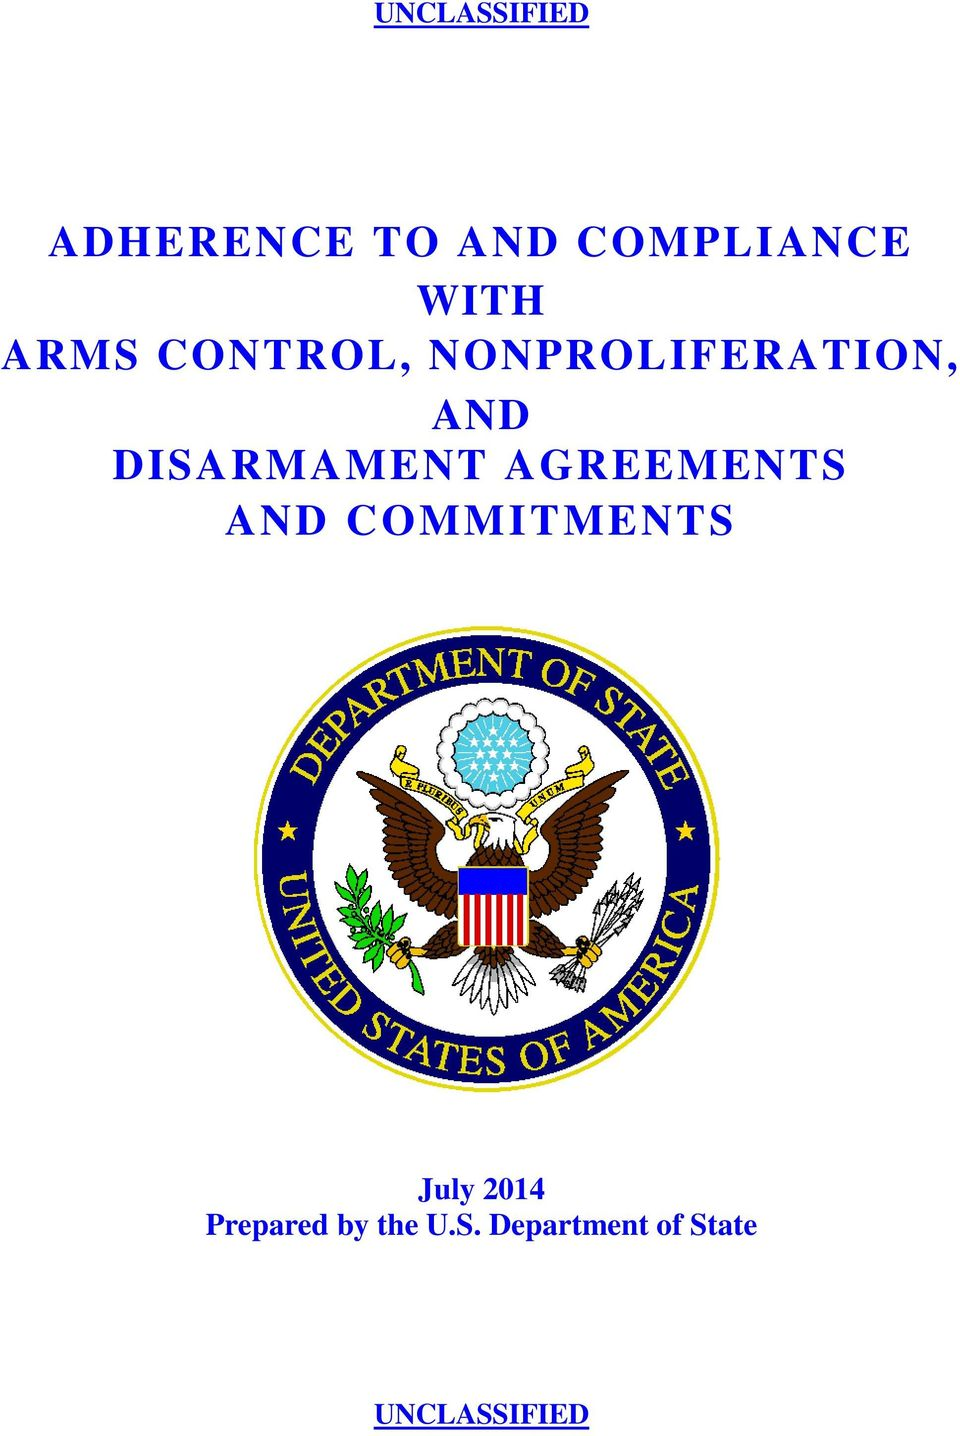 DISARMAMENT AGREEMENTS AND COMMITMENTS